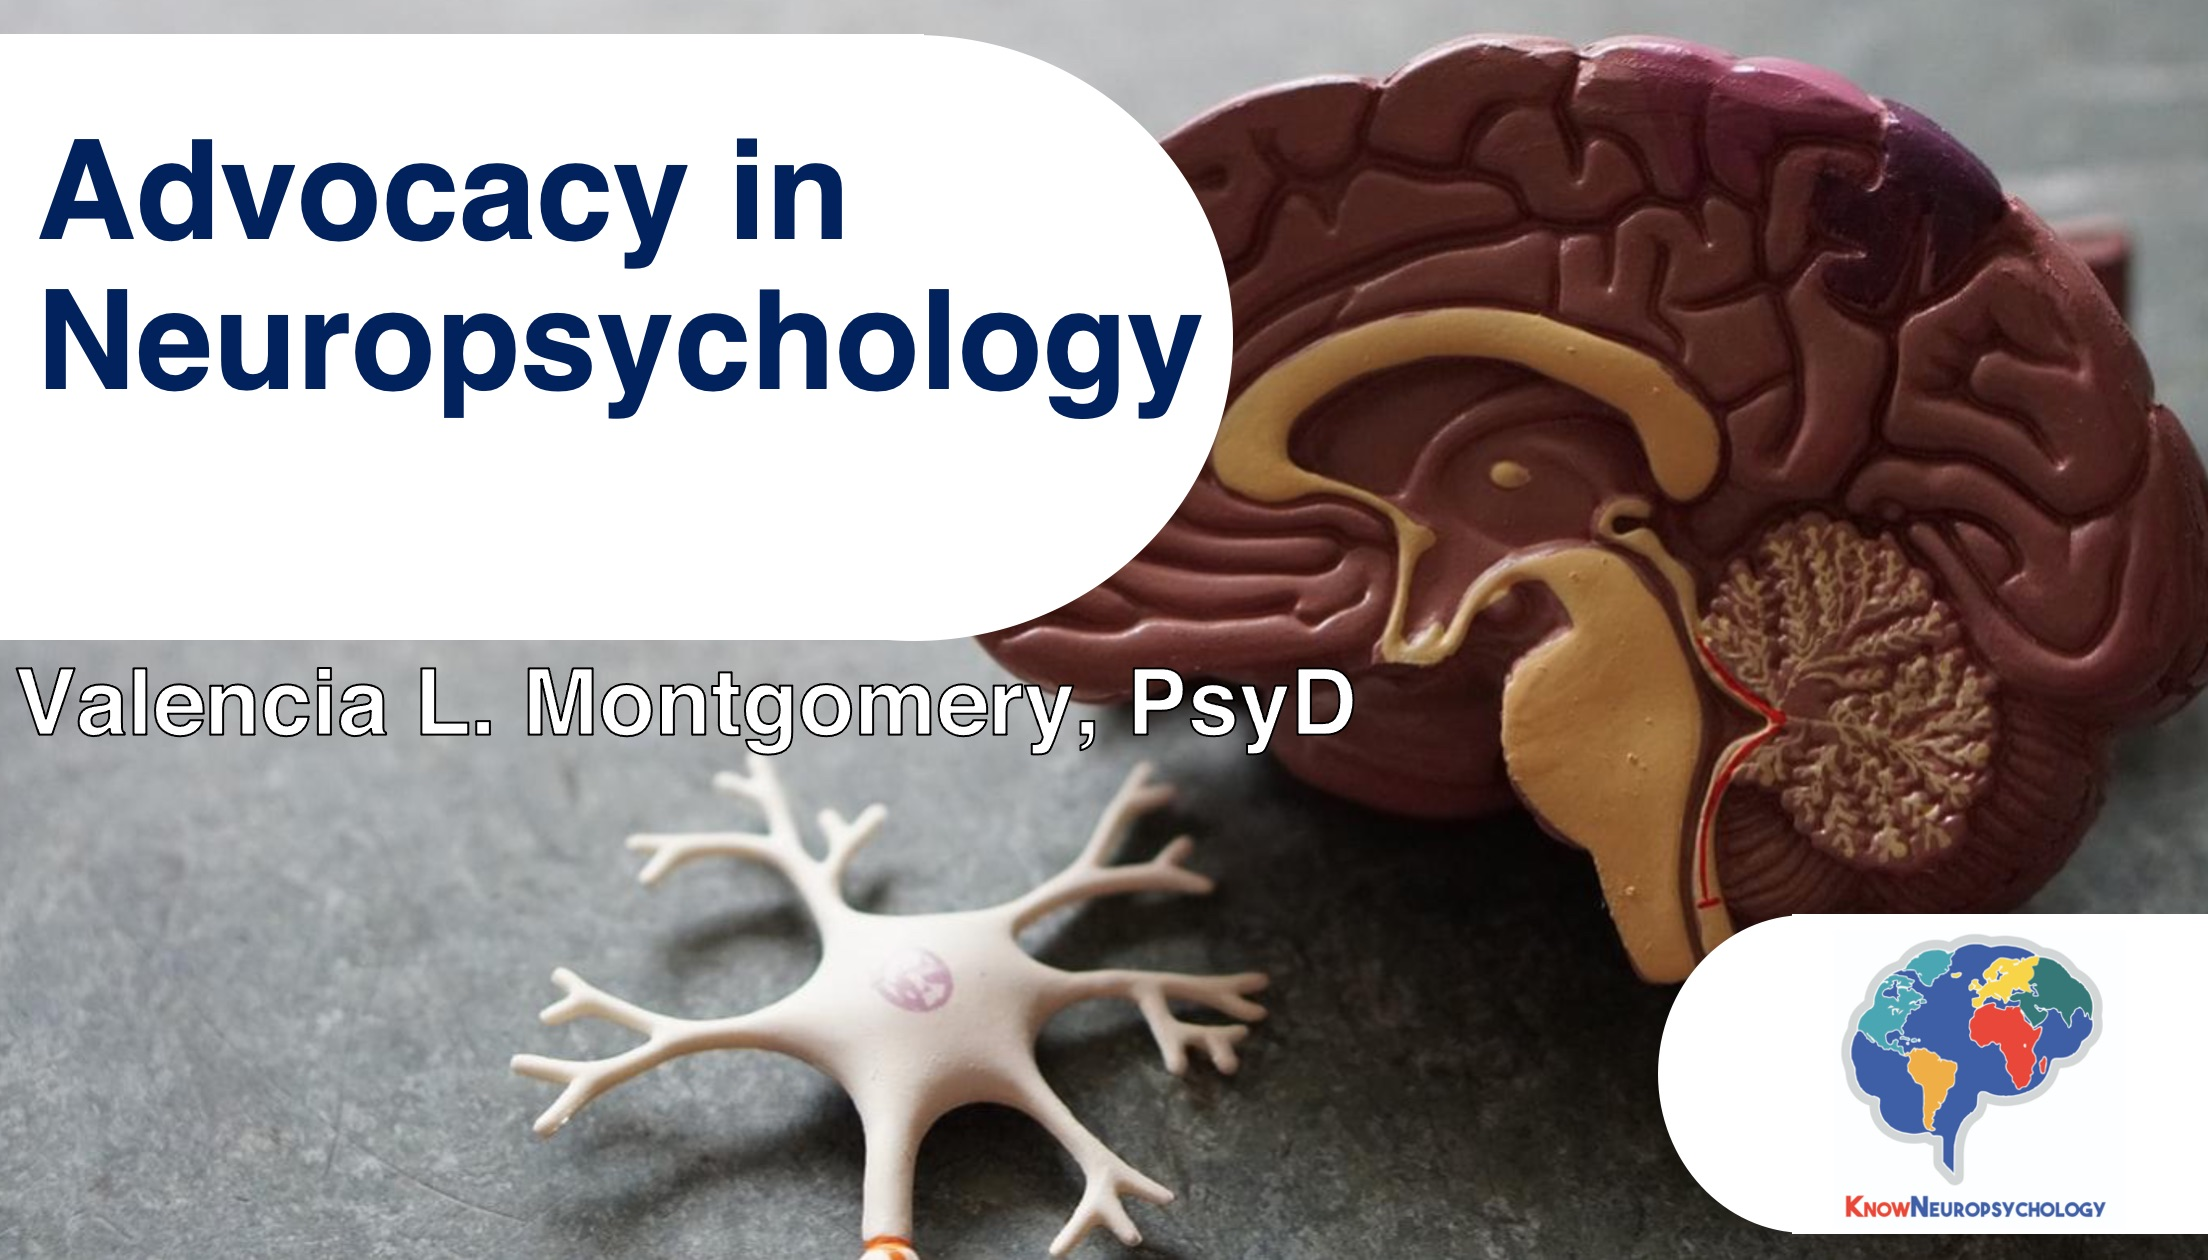 Advocacy in neuropsychology: Important considerations from the clinic to the profession by Dr. Valencia Montgomery